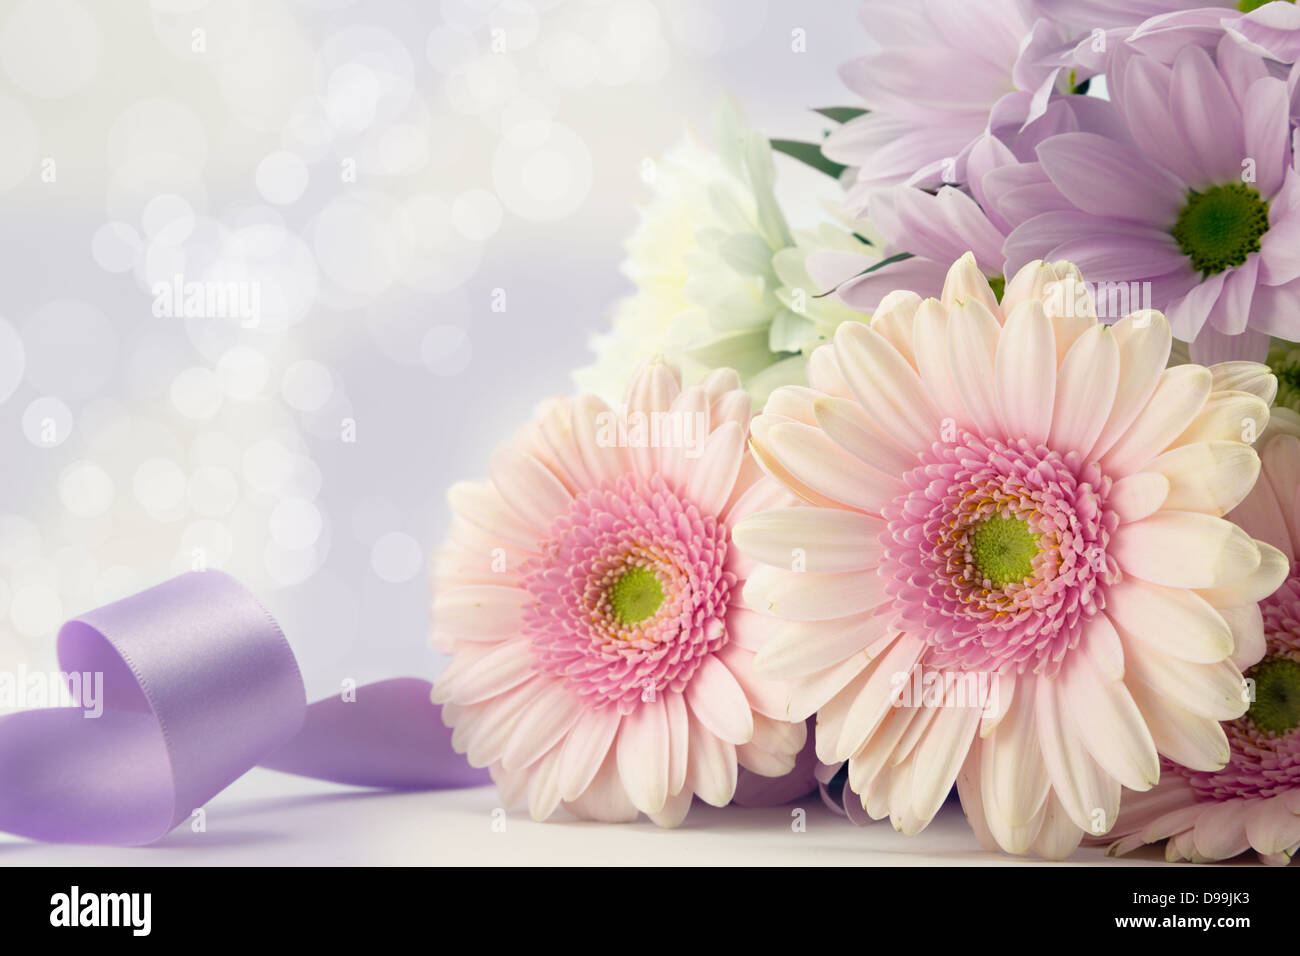 Pink gerbera flowers with mauve ribbon and soft diffused background. - Stock Image